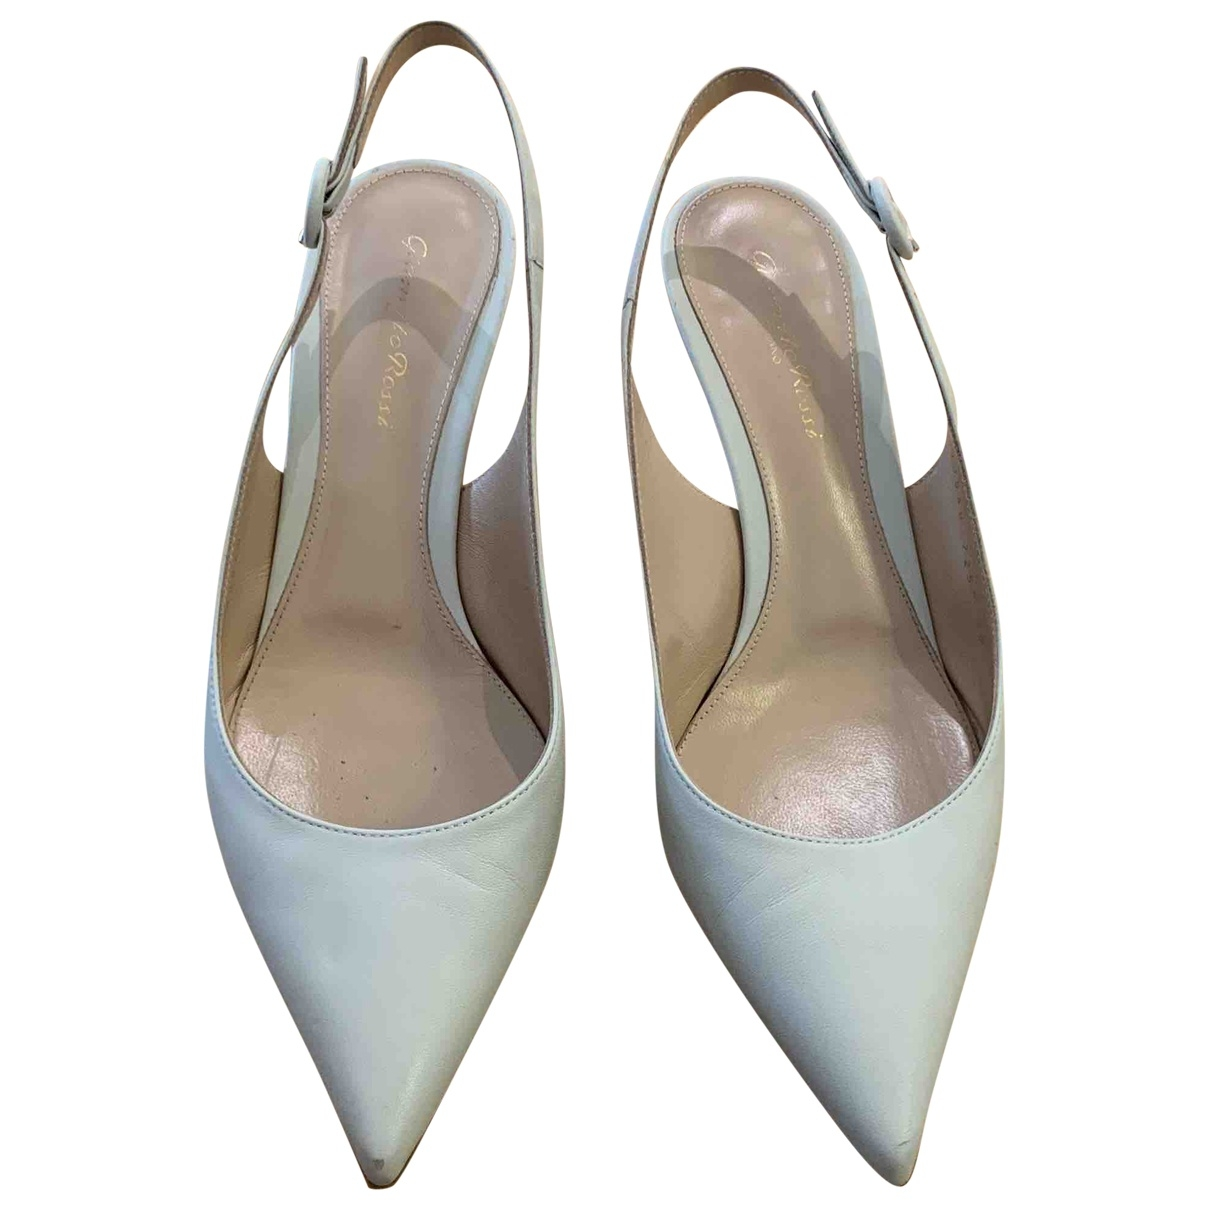 Gianvito Rossi \N White Leather Heels for Women 39 EU